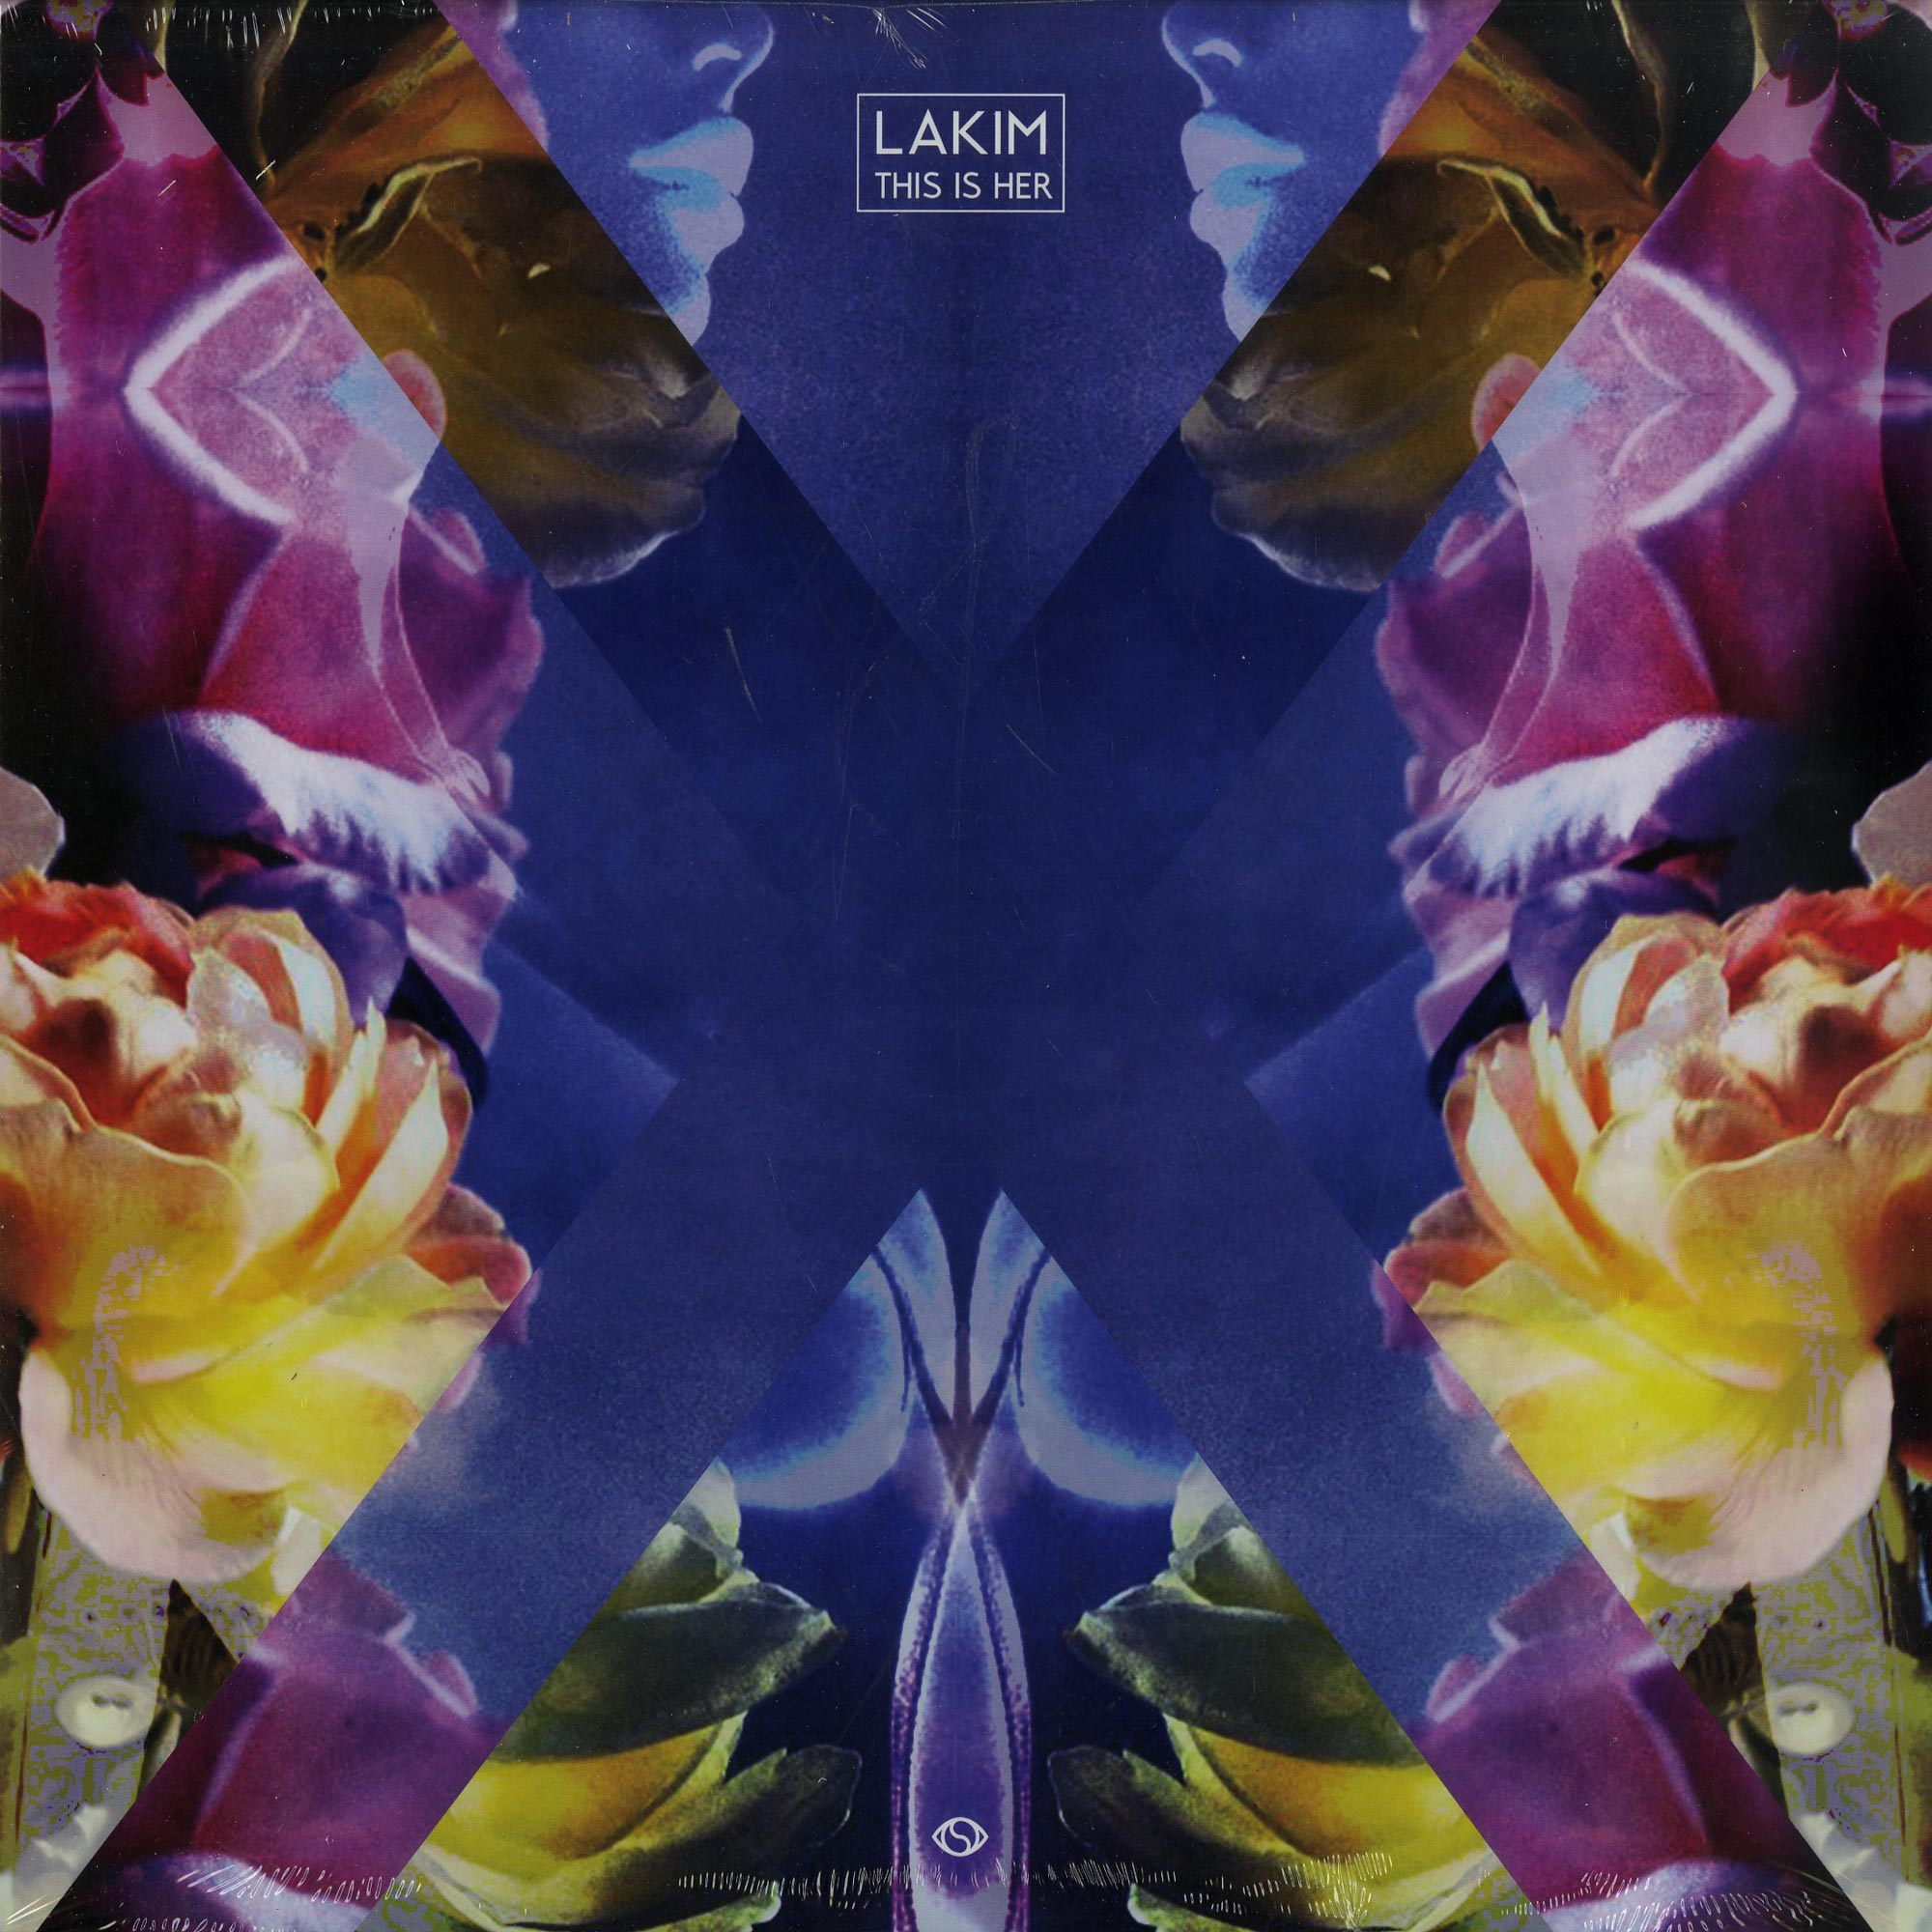 Lakim - THIS IS HER